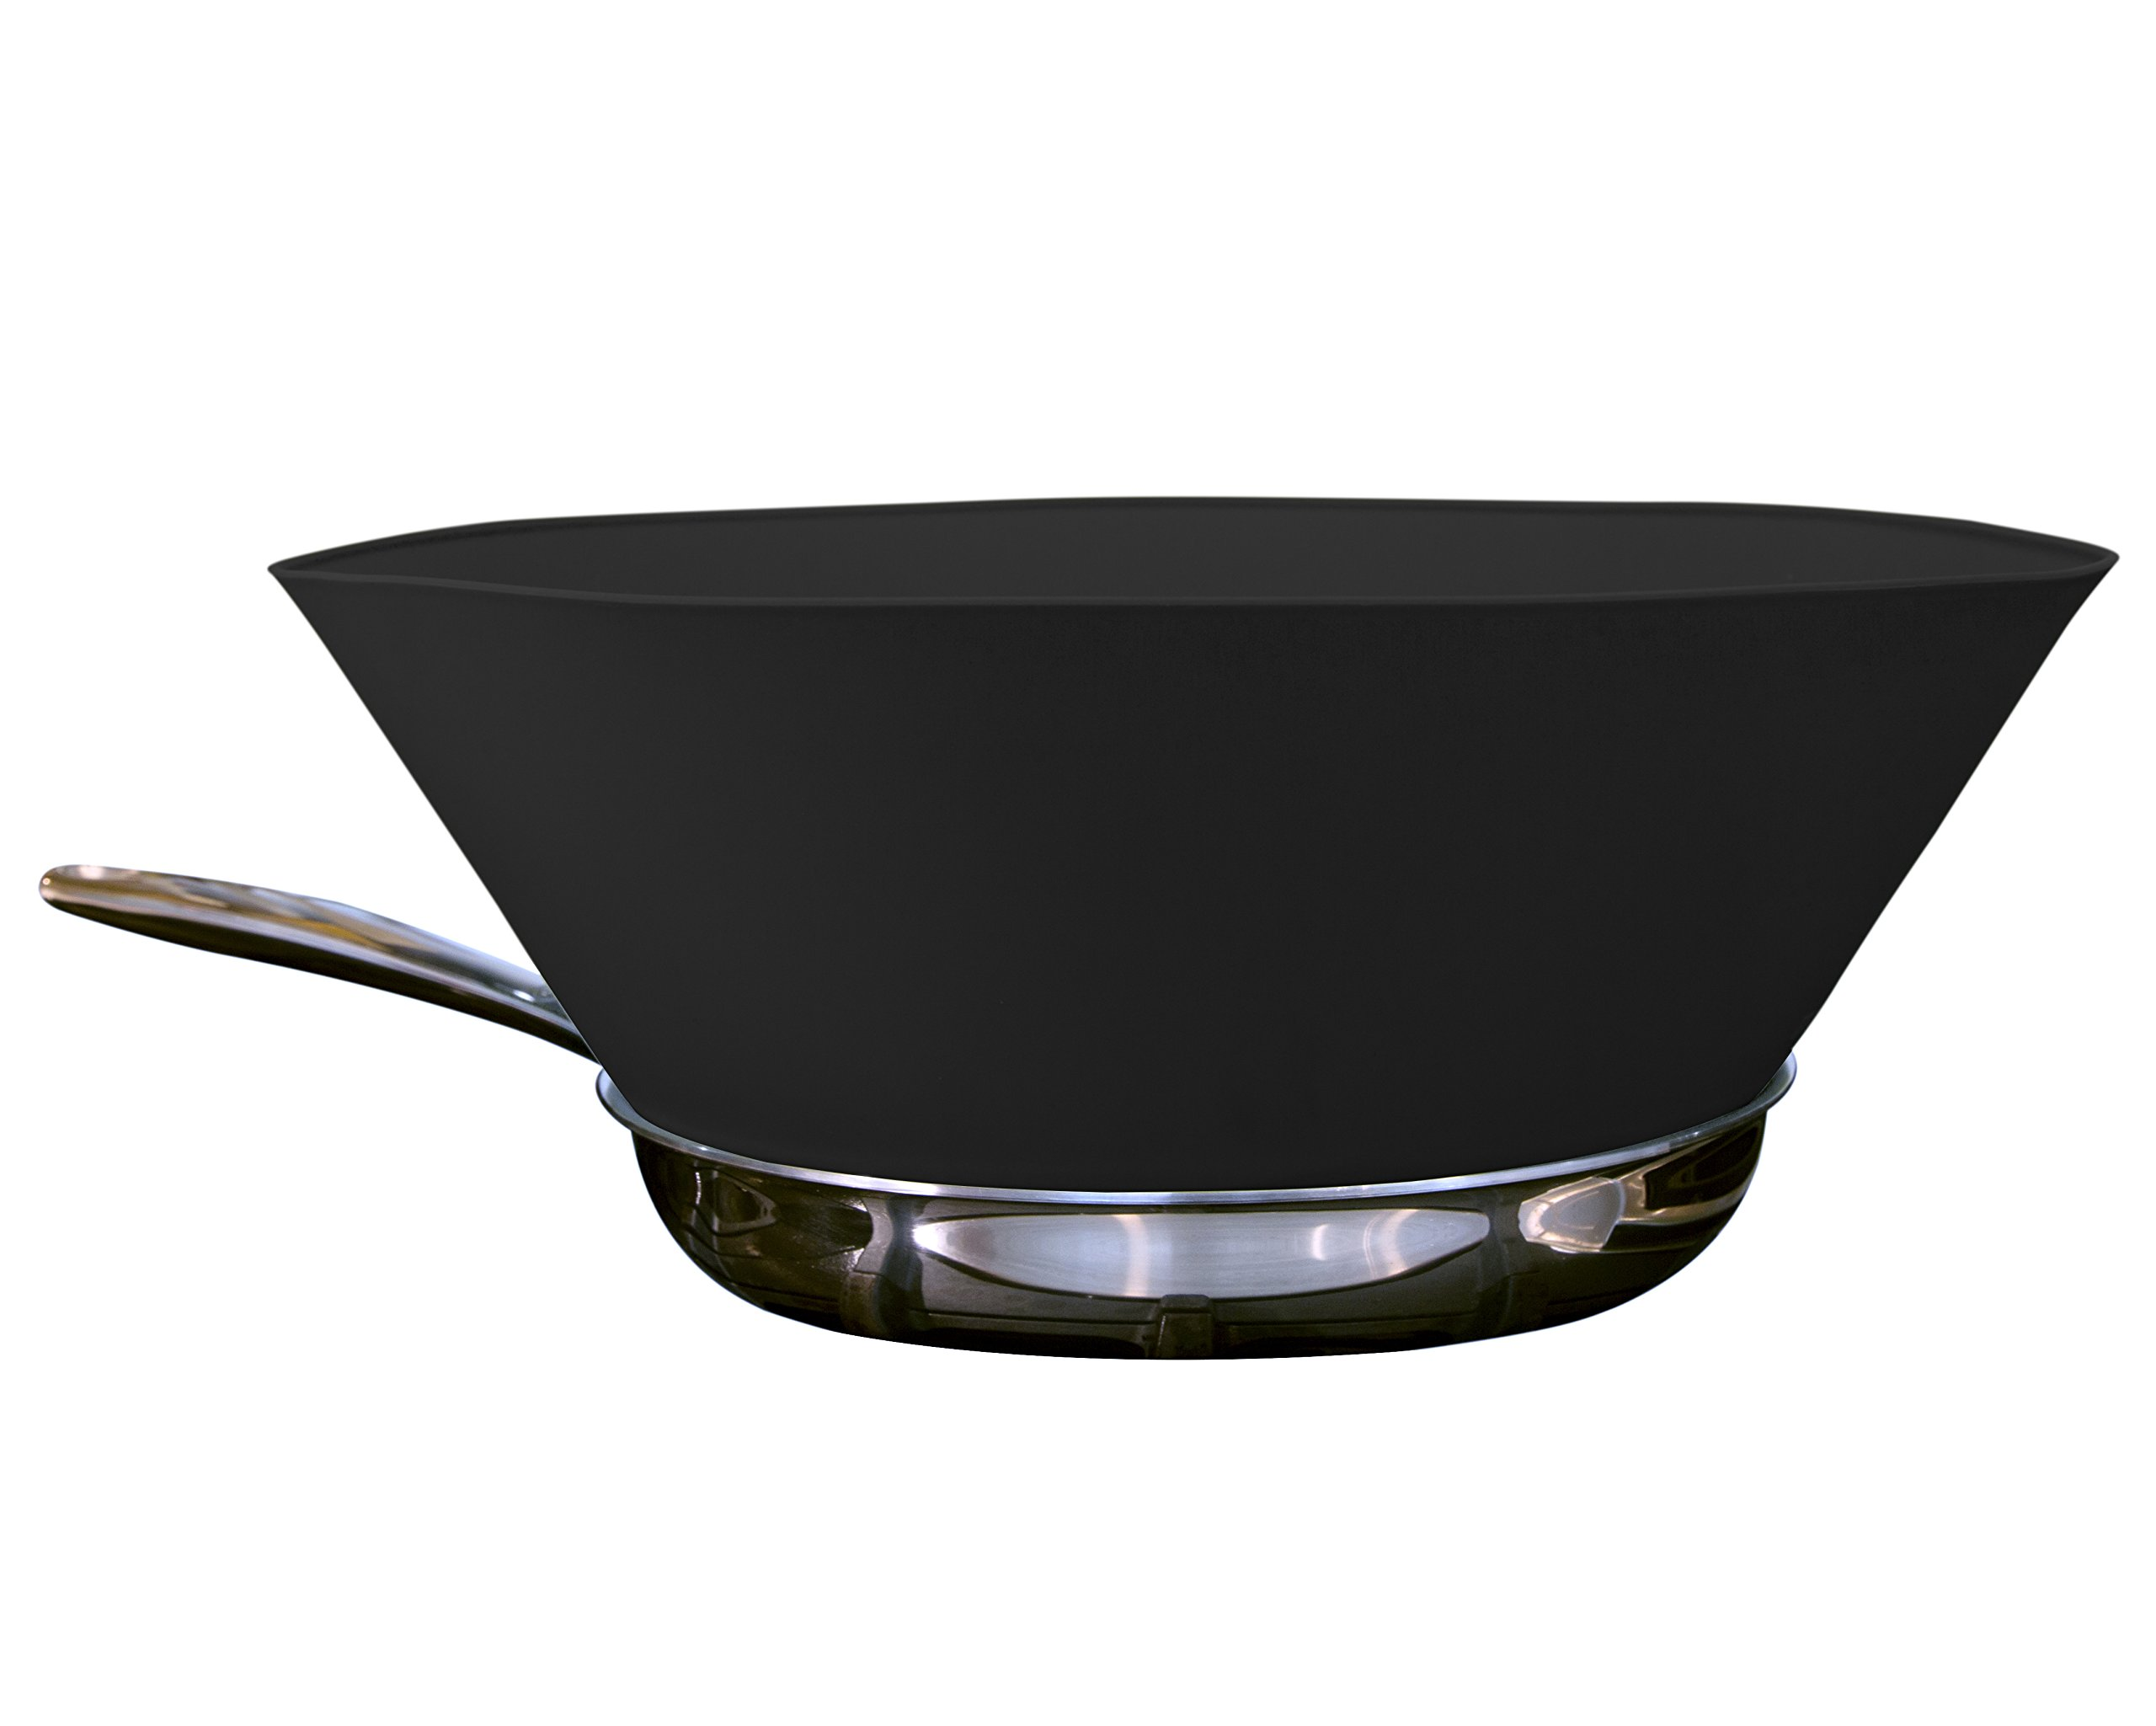 Frywall 12'' (Large Pans) - Ultimate Splatter Protection without Compromises (Black)